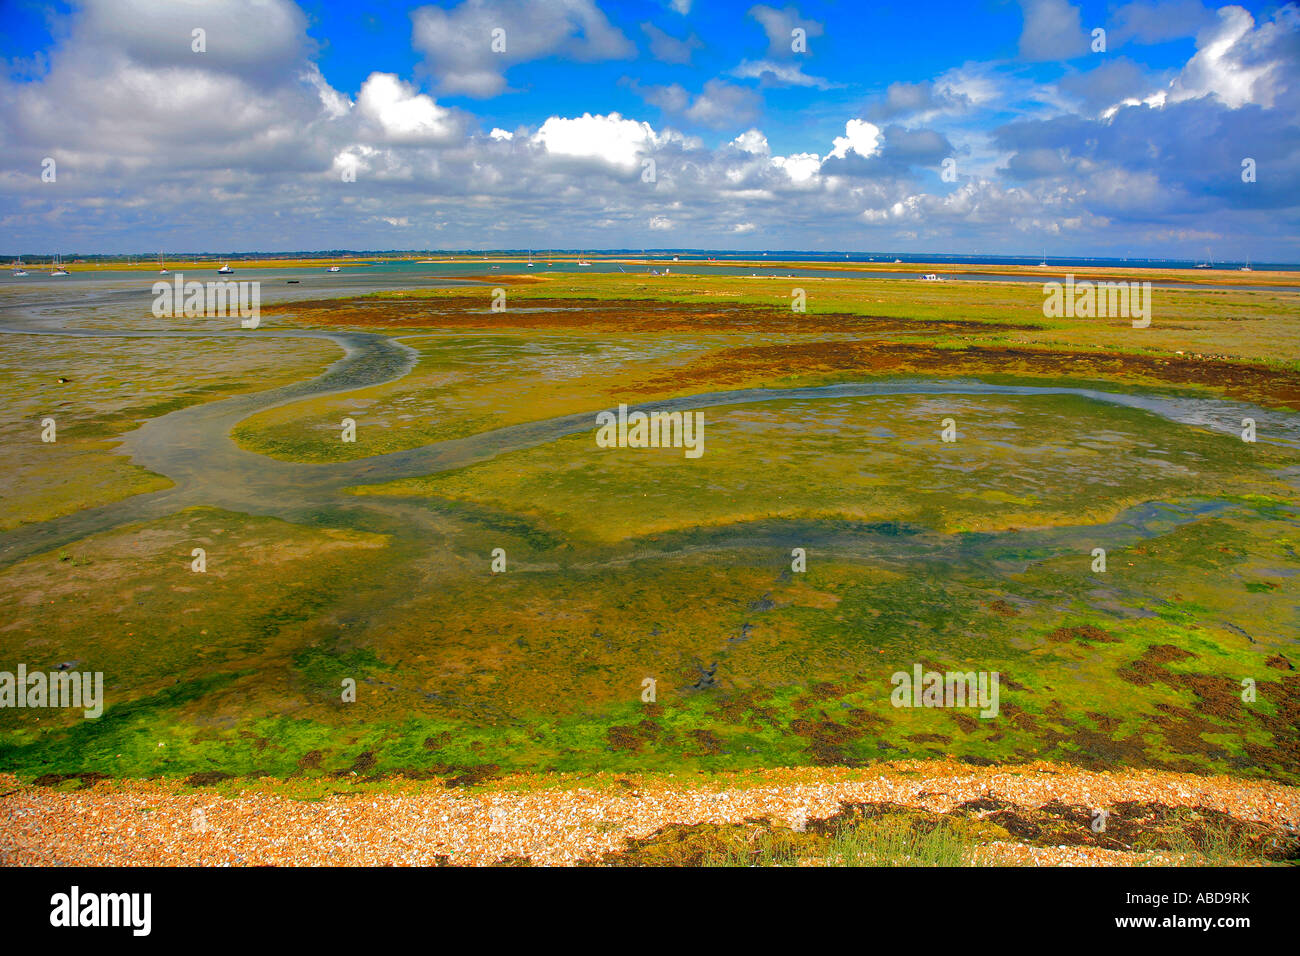 Keyhaven Marshes, Hurst Point, Hurst Castle, the Solent, Hampshire England Britain UK - Stock Image